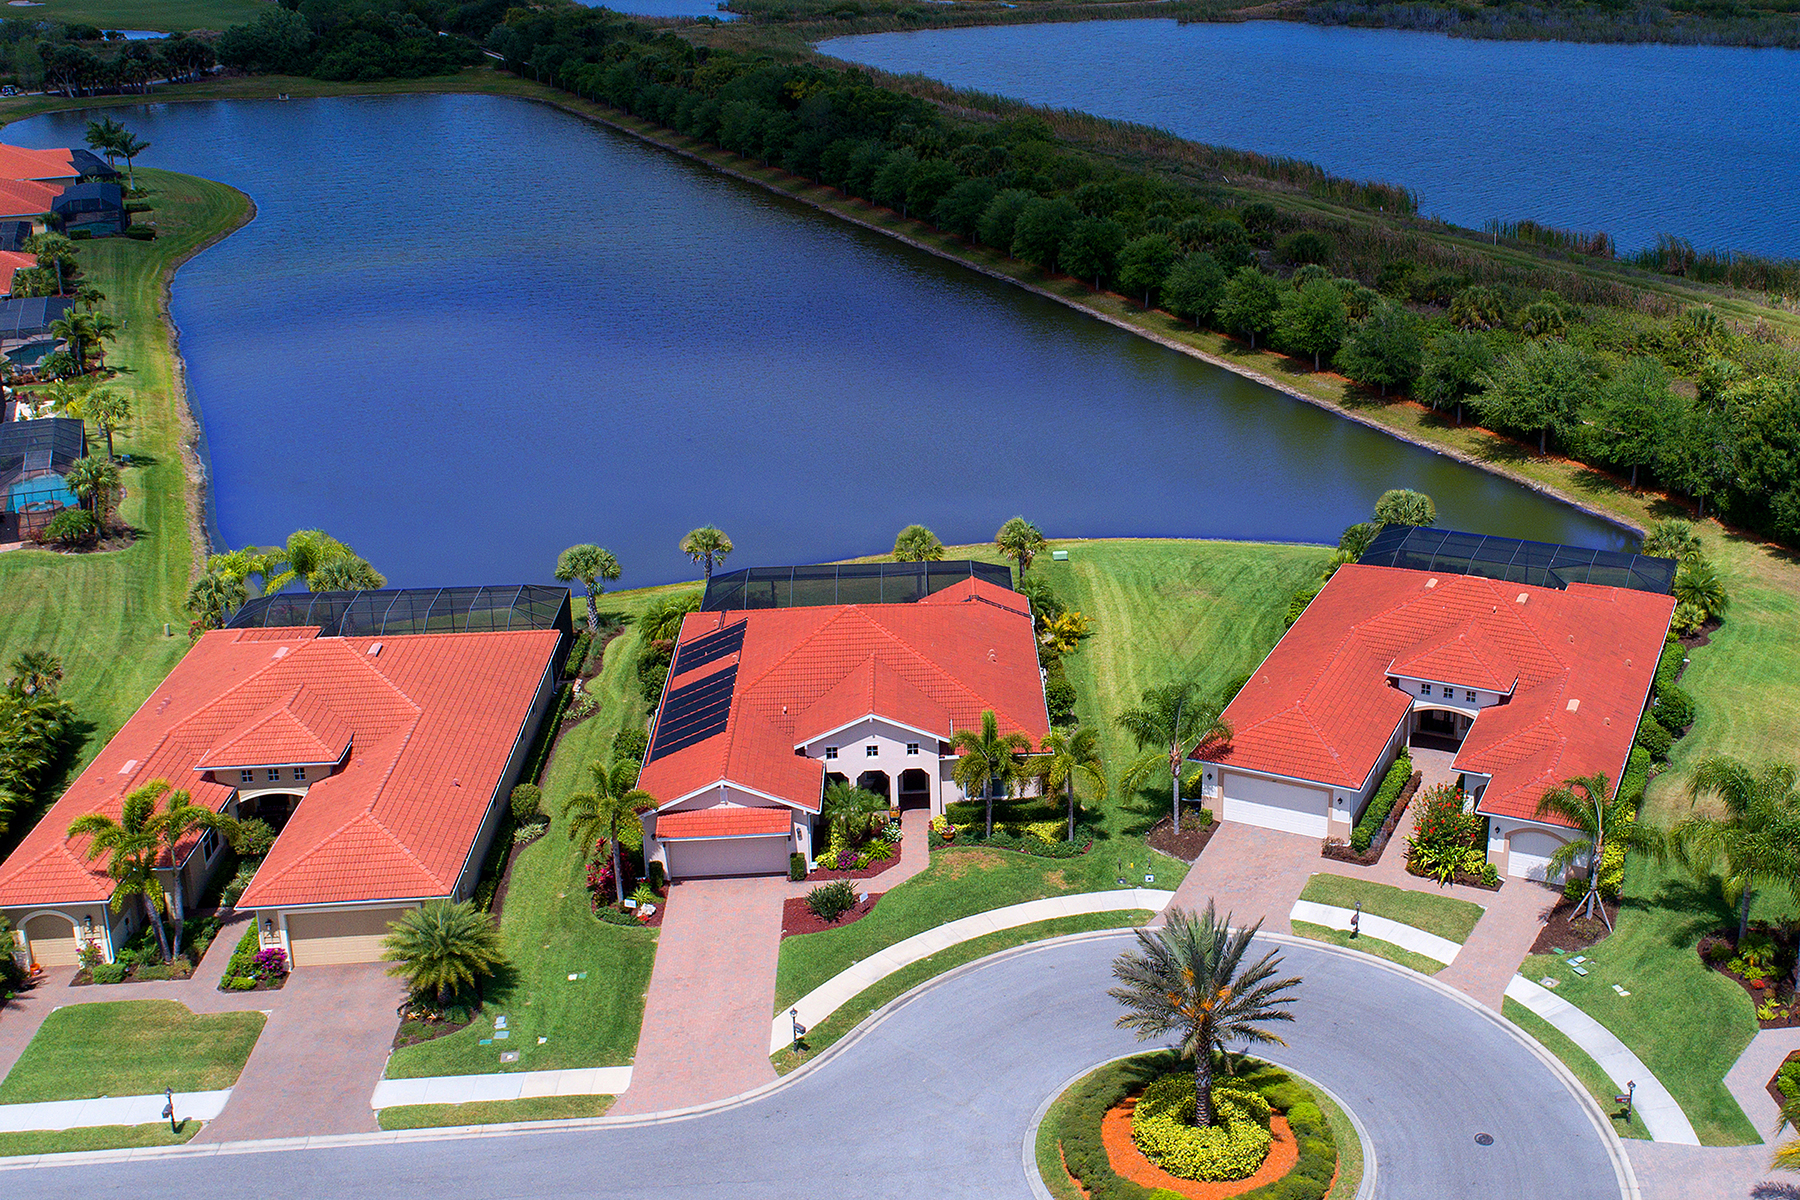 Casa Unifamiliar por un Venta en VENETIAN GOLF & RIVER CLUB 105 Asti Ct North Venice, Florida, 34275 Estados Unidos